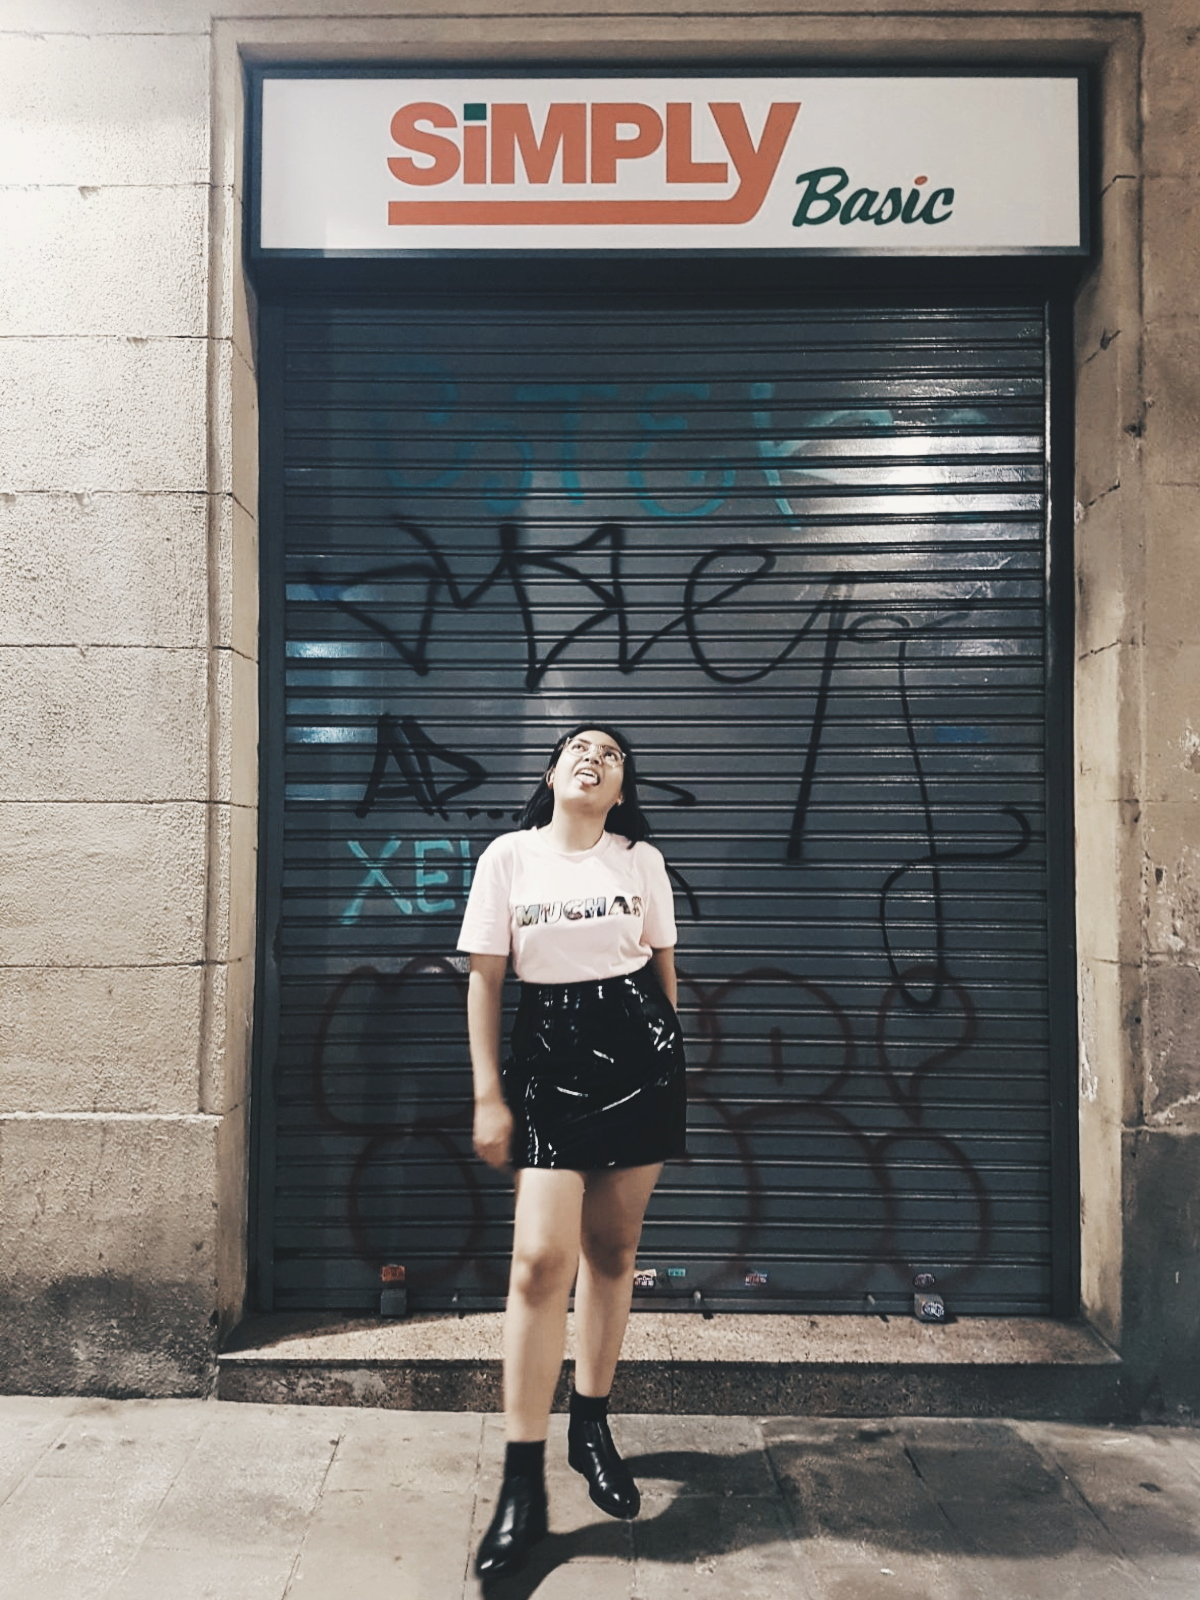 Barcelona - I guess this is the place where I'm happiest with my clothes. Because I was well prepared for this kind of weather. This was the weather that I expected in every other city! Of course I was wrong, but now you can learn from my mistakes I guess.